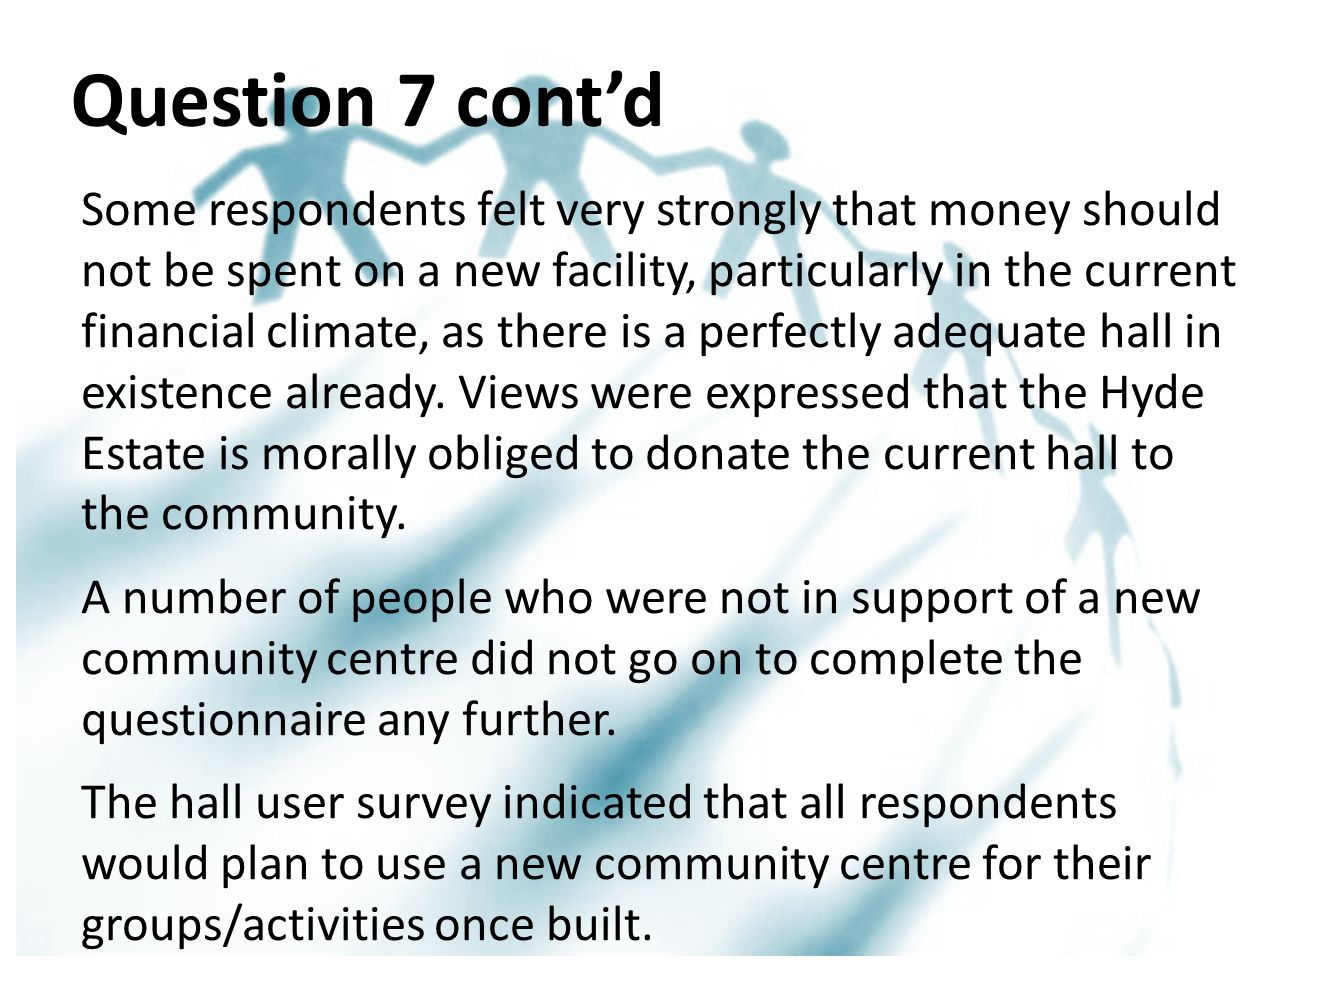 Question 7 cont'd Some respondents felt very strongly that money should not be spent on a new facility, particularly in the current financial climate, as there is a perfectly adequate hall in existence already.